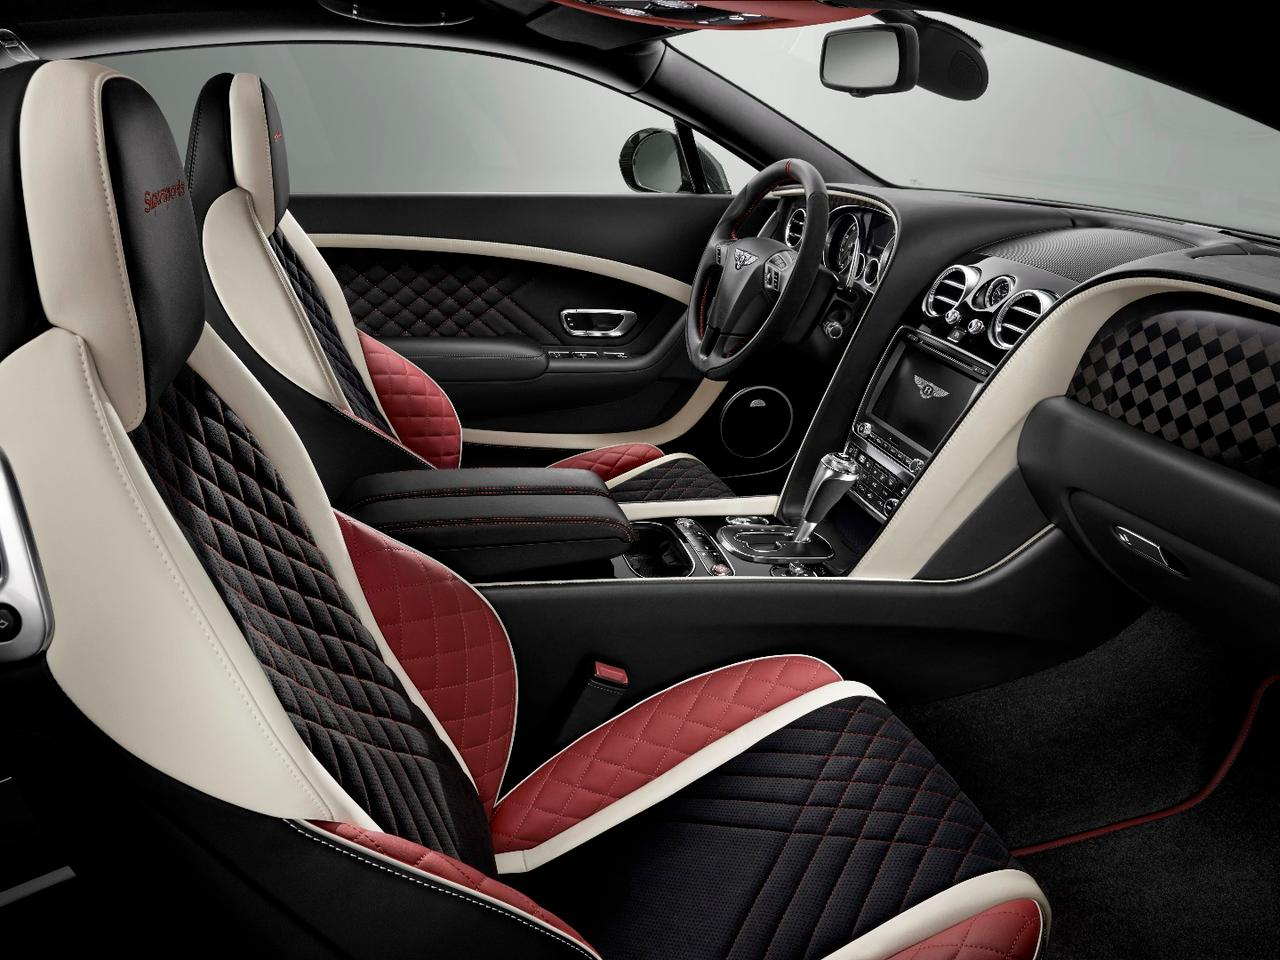 The new Bentley Continental Supersports interior features liberal dashings of Alcantara